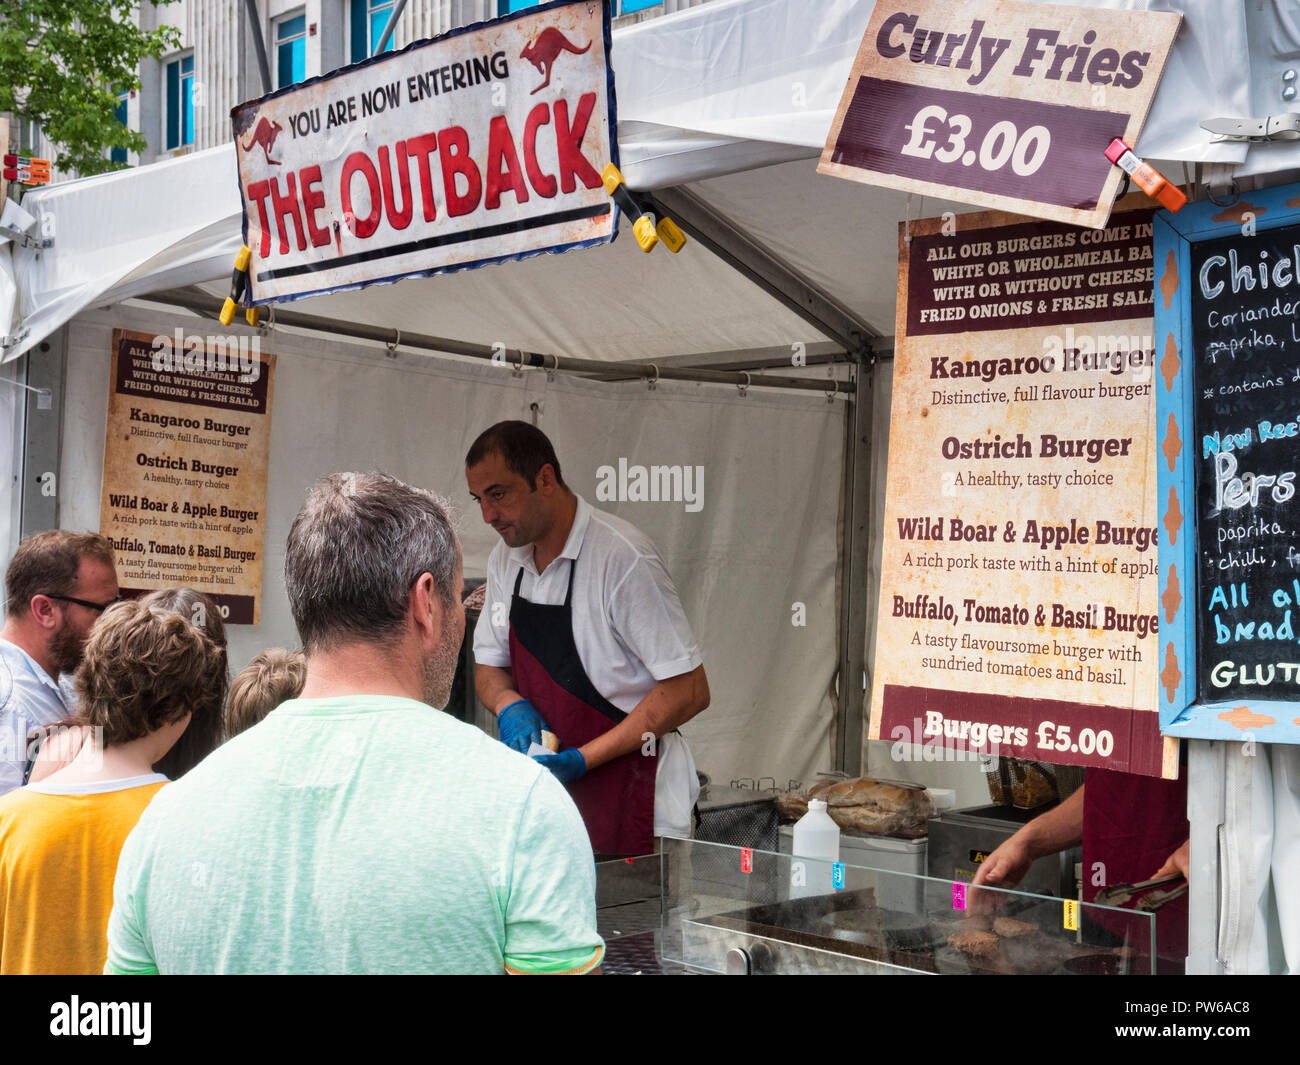 2 June 2018: Plymouth, Devon, UK - Customers gathered around a food stall selling kangaroo burgers at Flavour Fest, Plymouth, Devon, UK - Stock Image